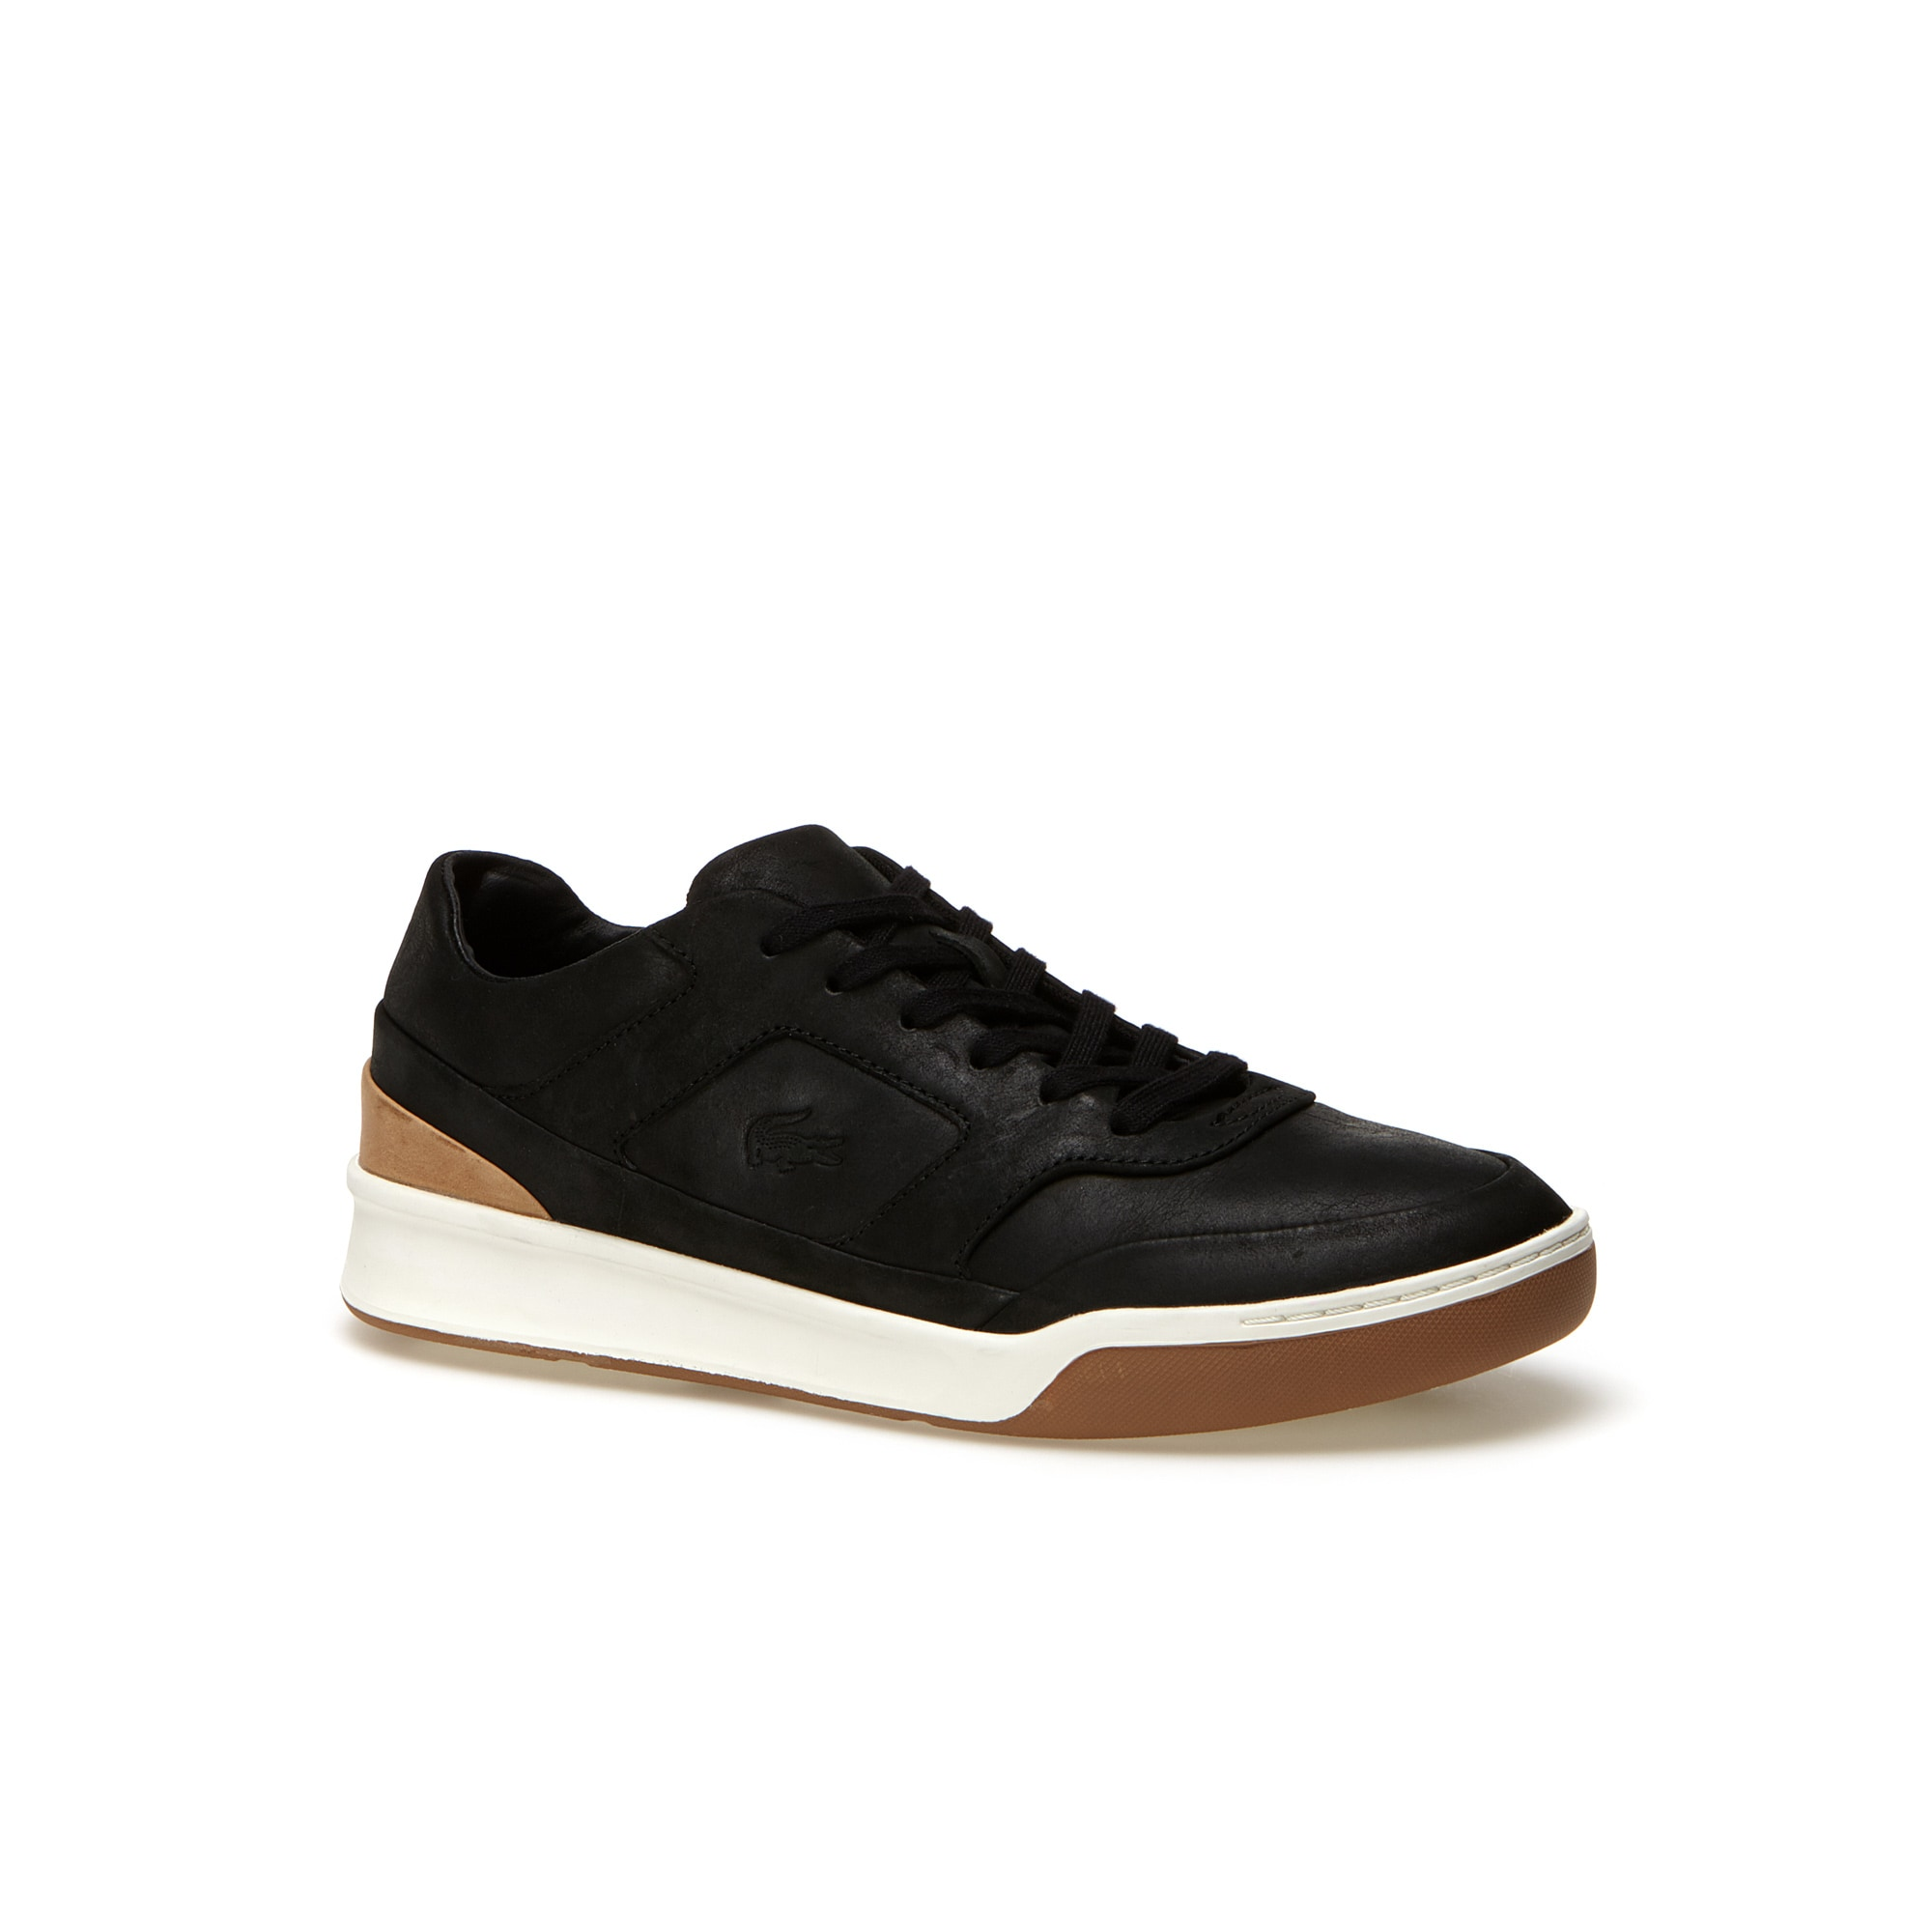 Men's Explorateur Sneakers